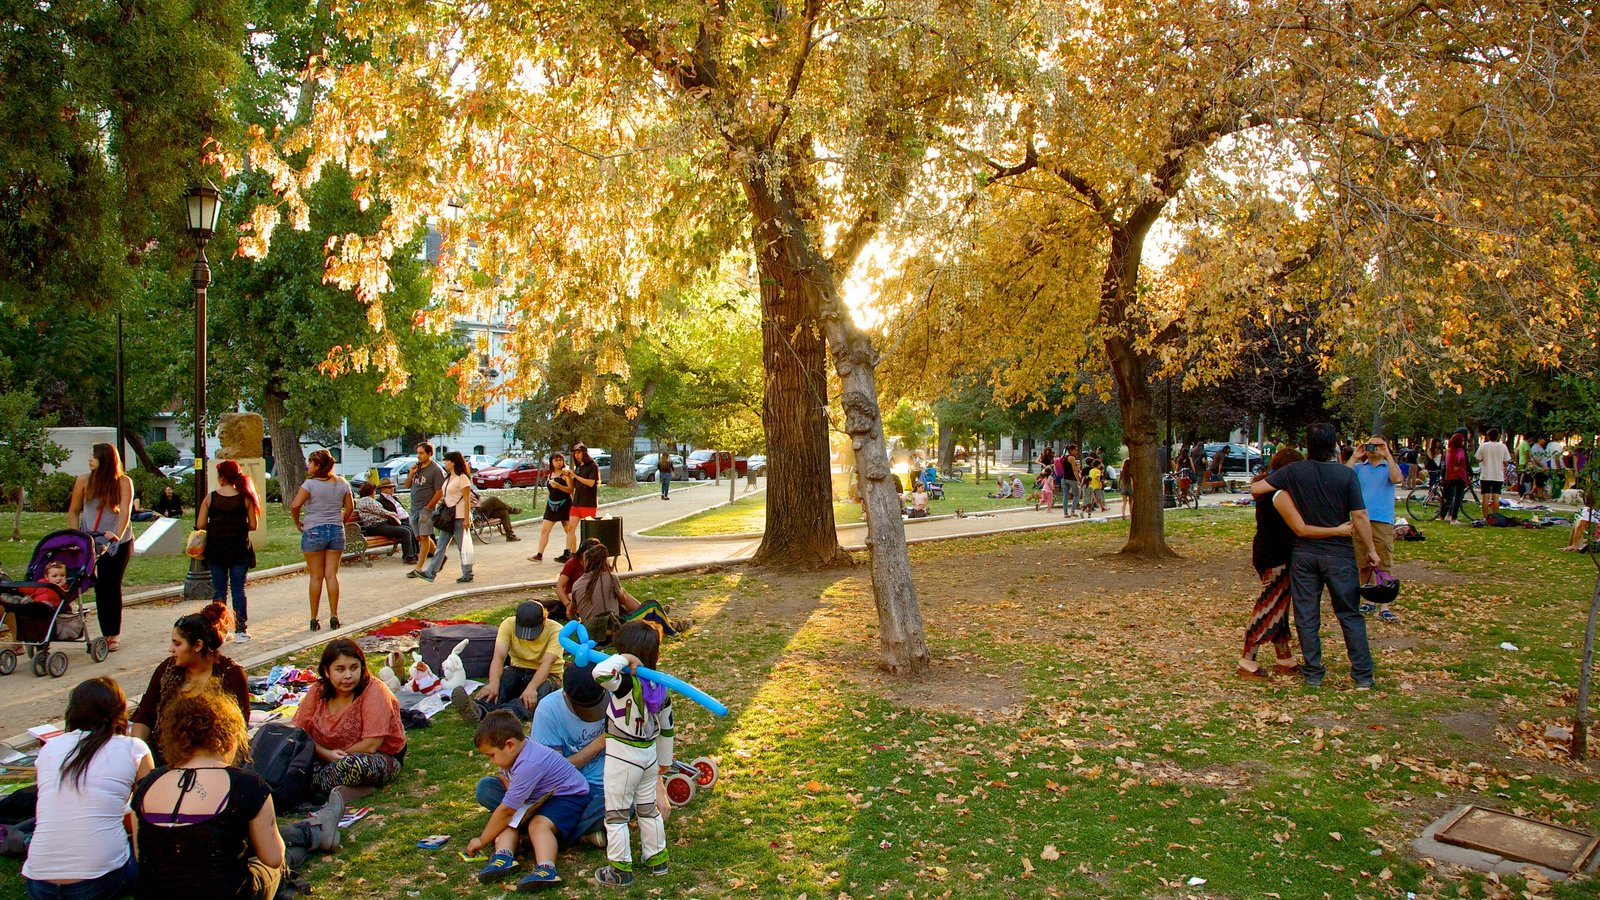 Gardens & Parks Pictures: View Images of Chile